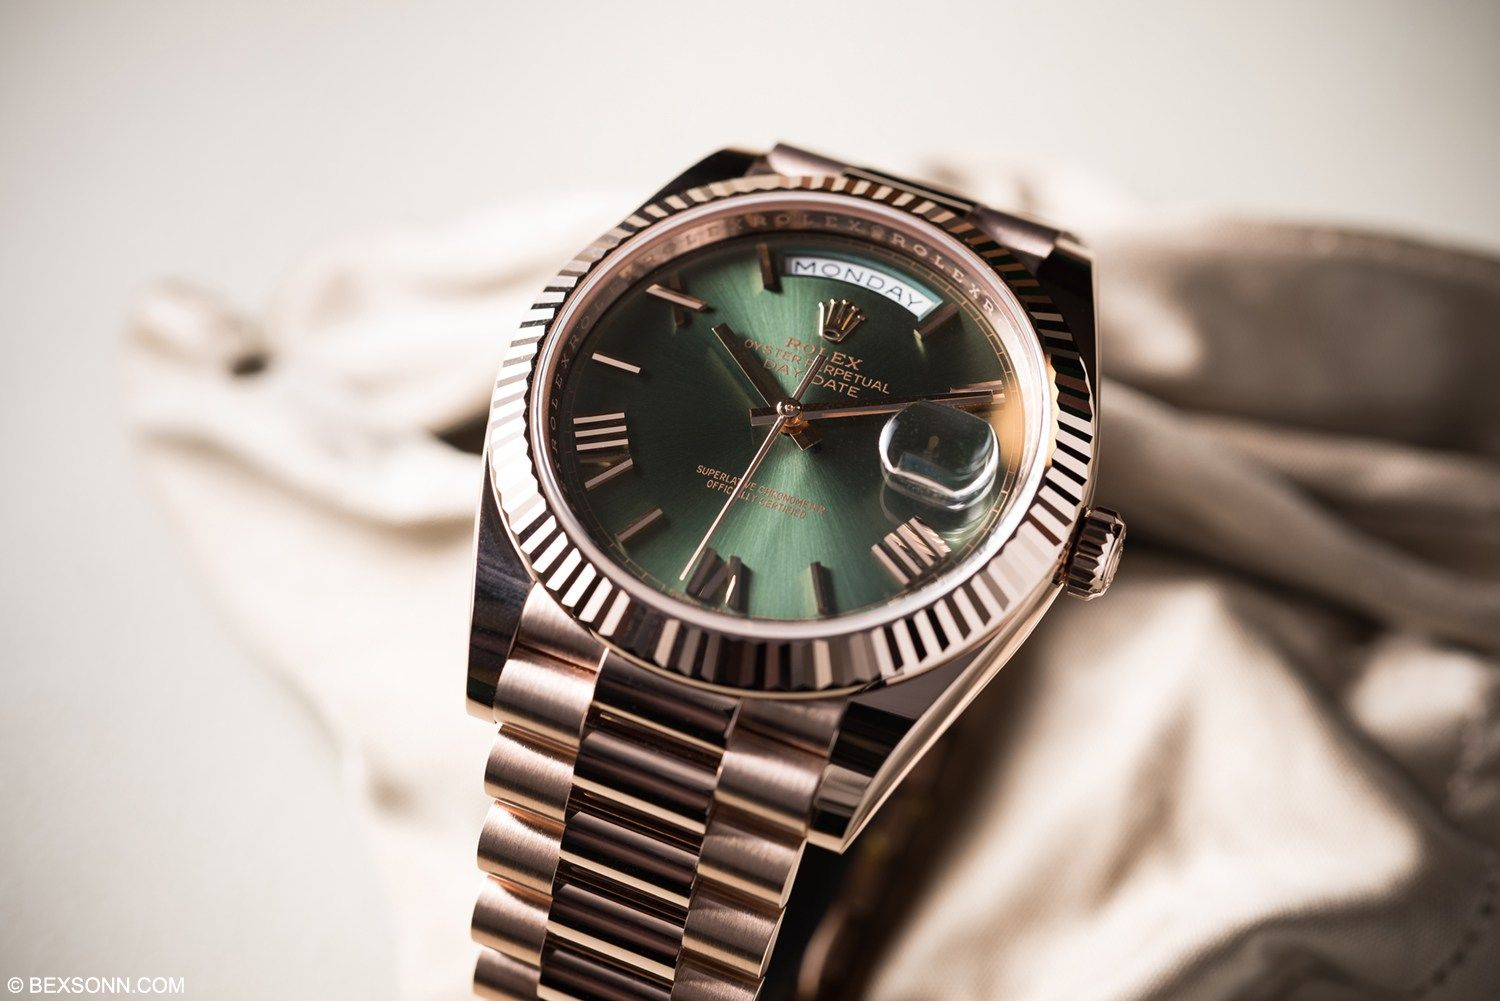 96e8067120b 60TH ANNIVERSARY ROLEX DAY-DATE 40 | Watches, Straps and related ...